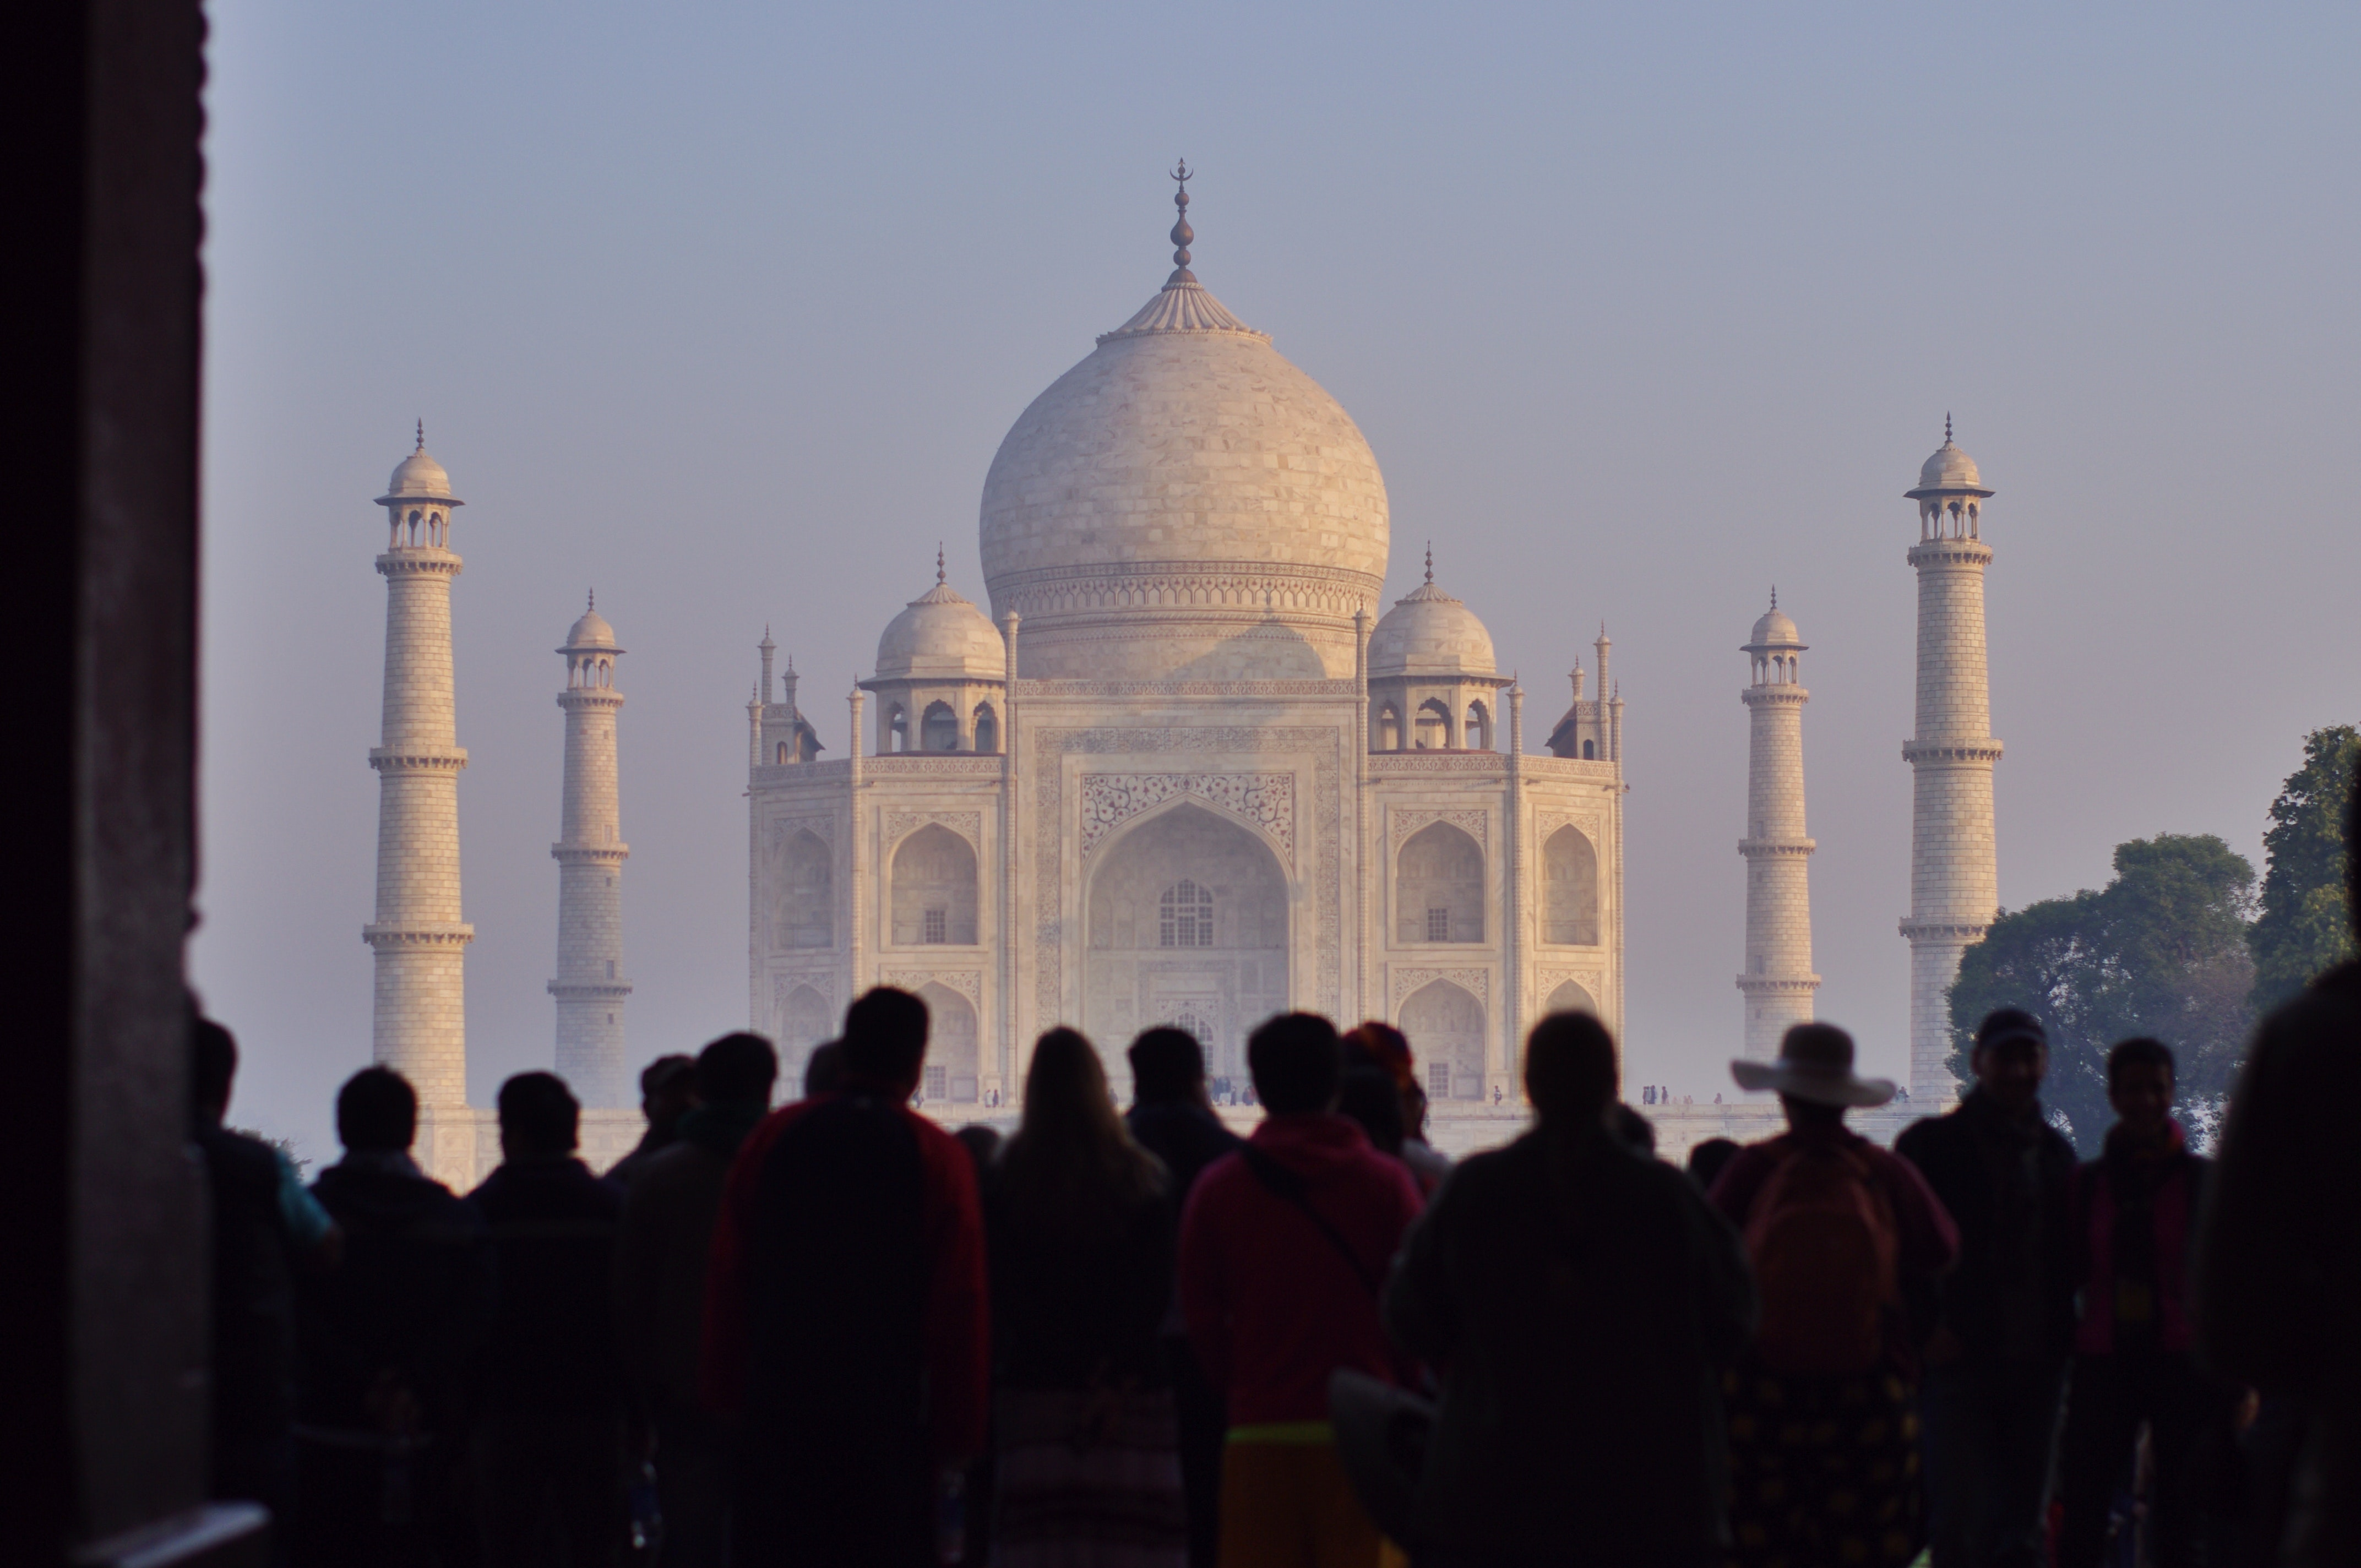 AGRA: THE HOMETOWN OF MUGHAL ARCHITECTURE